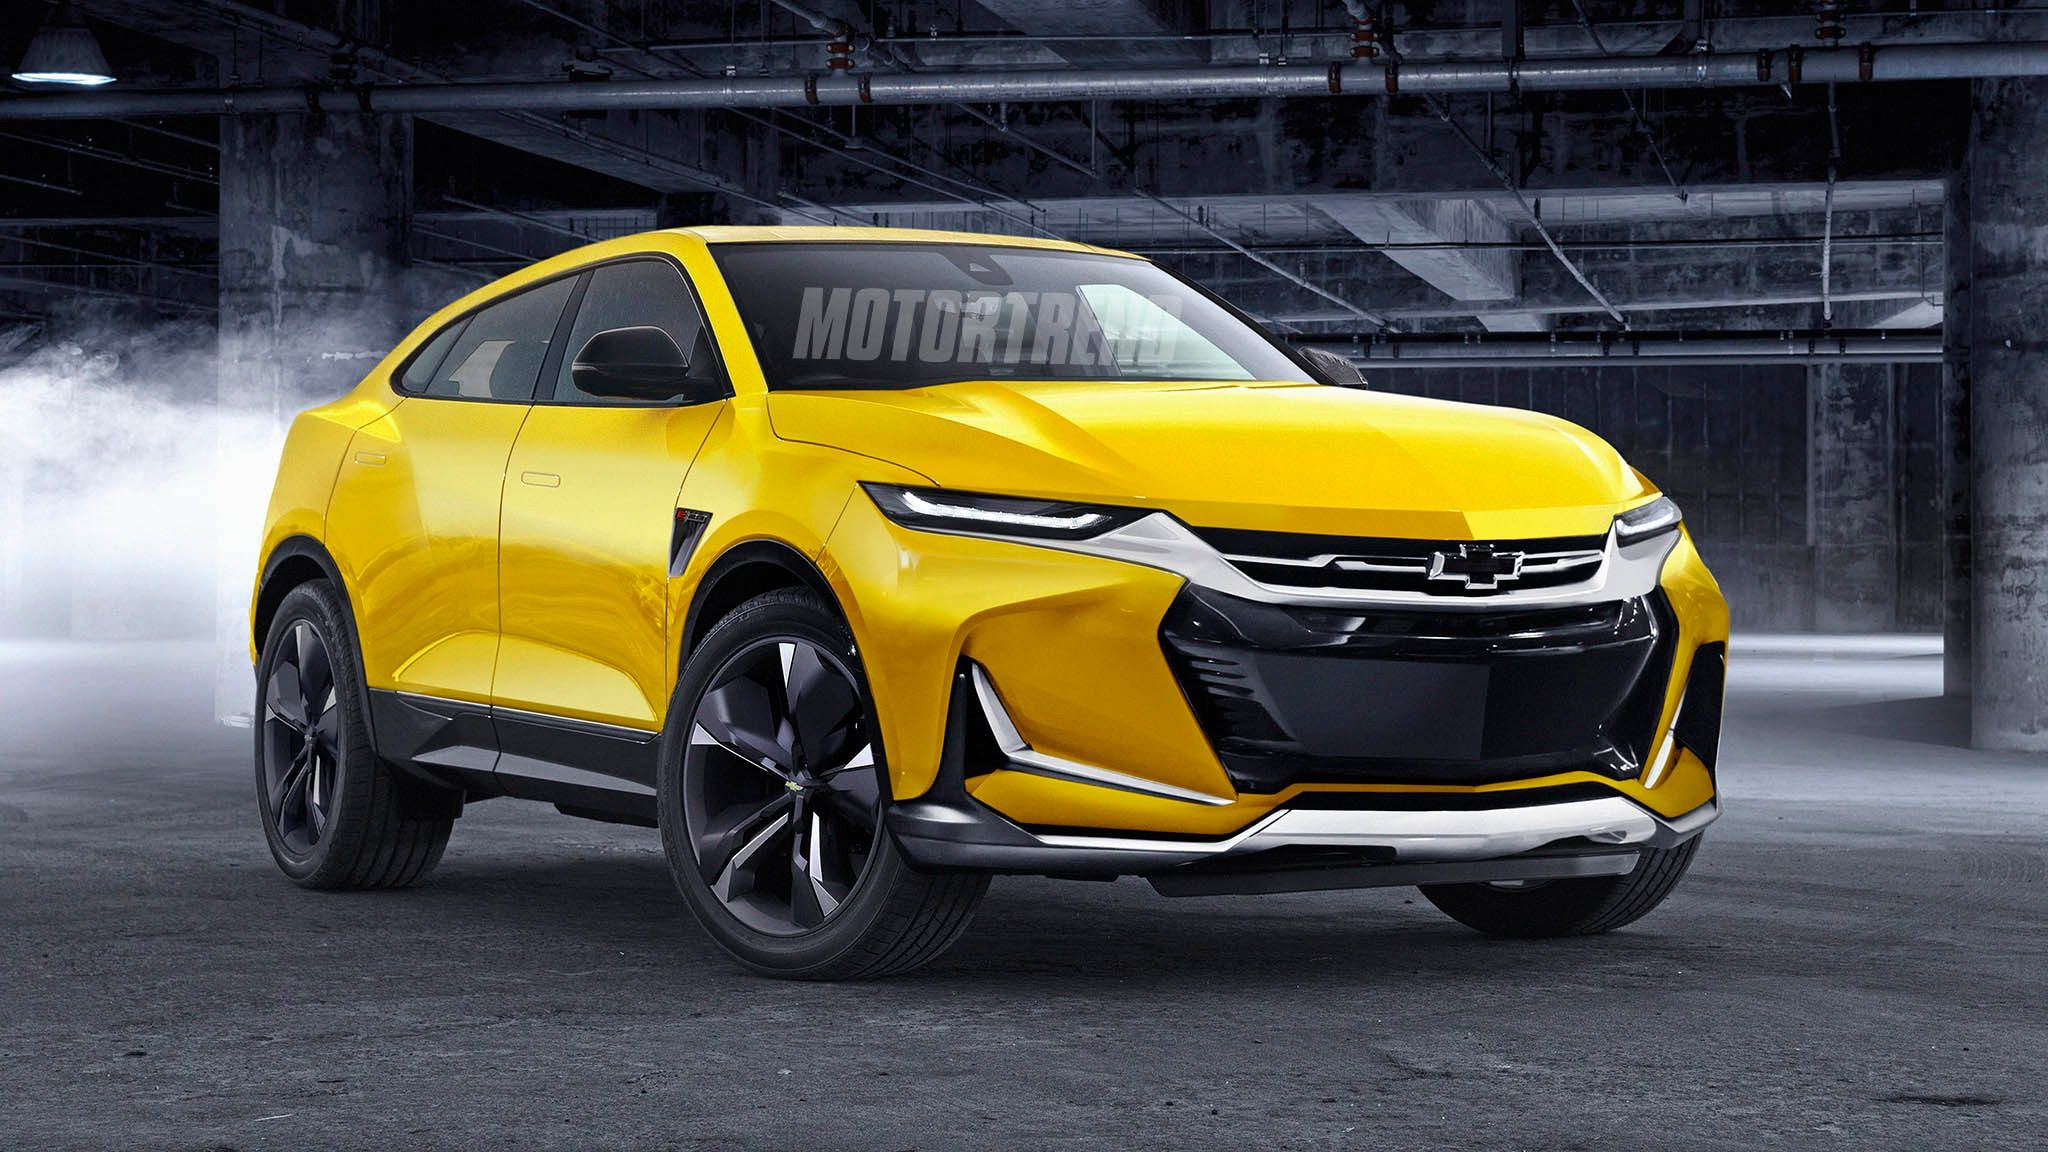 2021 Chevy Camaro The 2021 Chevy Camaro And Its Distinction For Unsullied Reliability Allow It To Be A Strong Contender In The Fading Family Sedan Segment Its Di 2020